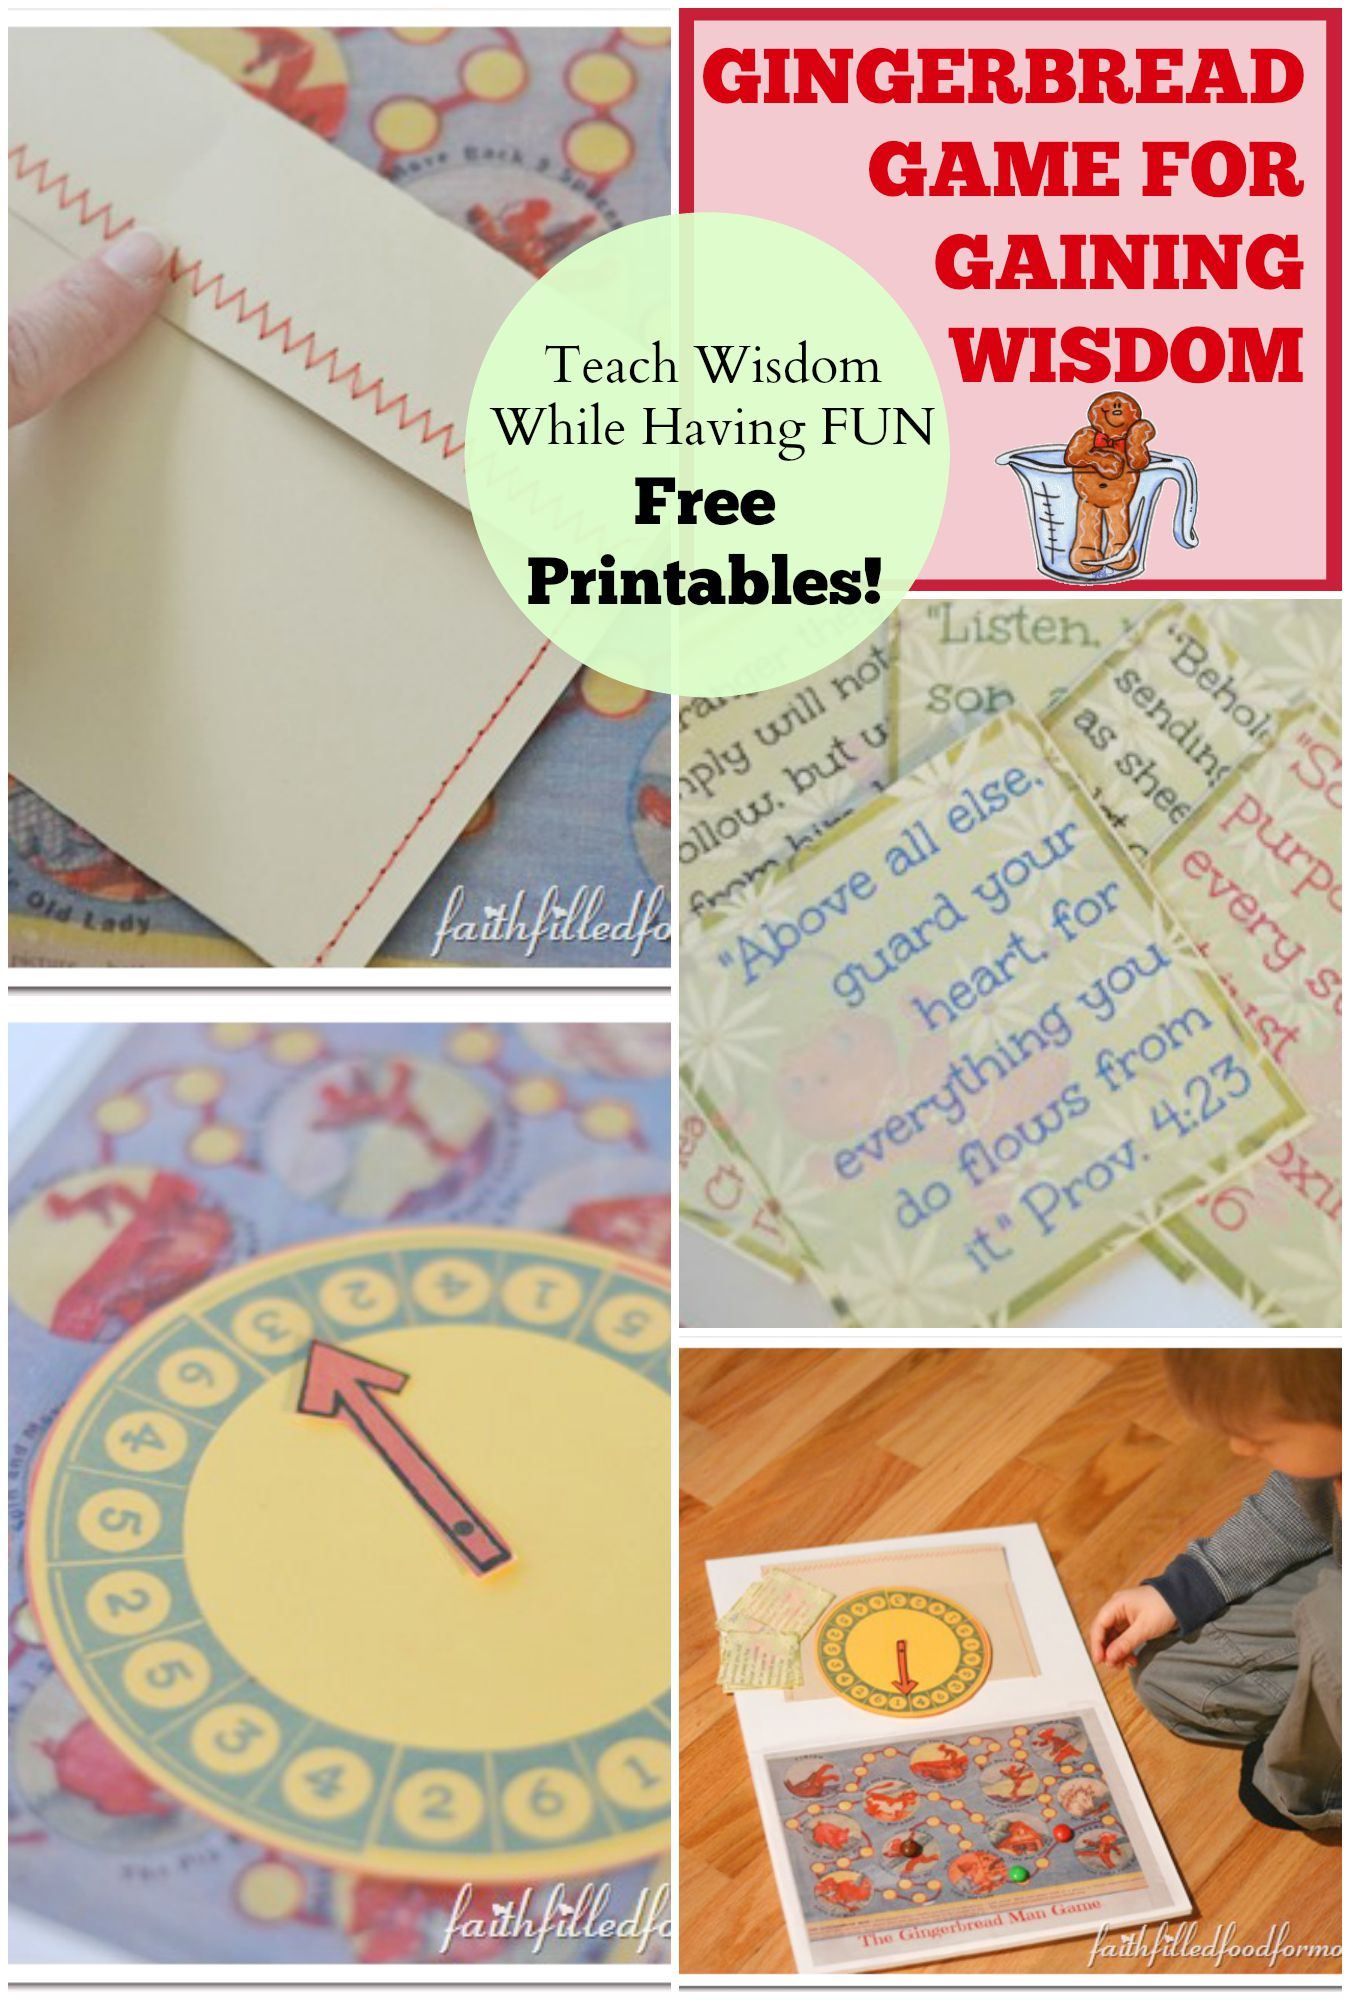 Diy Gingerbread Game For Gaining Wisdom Faith Filled Food